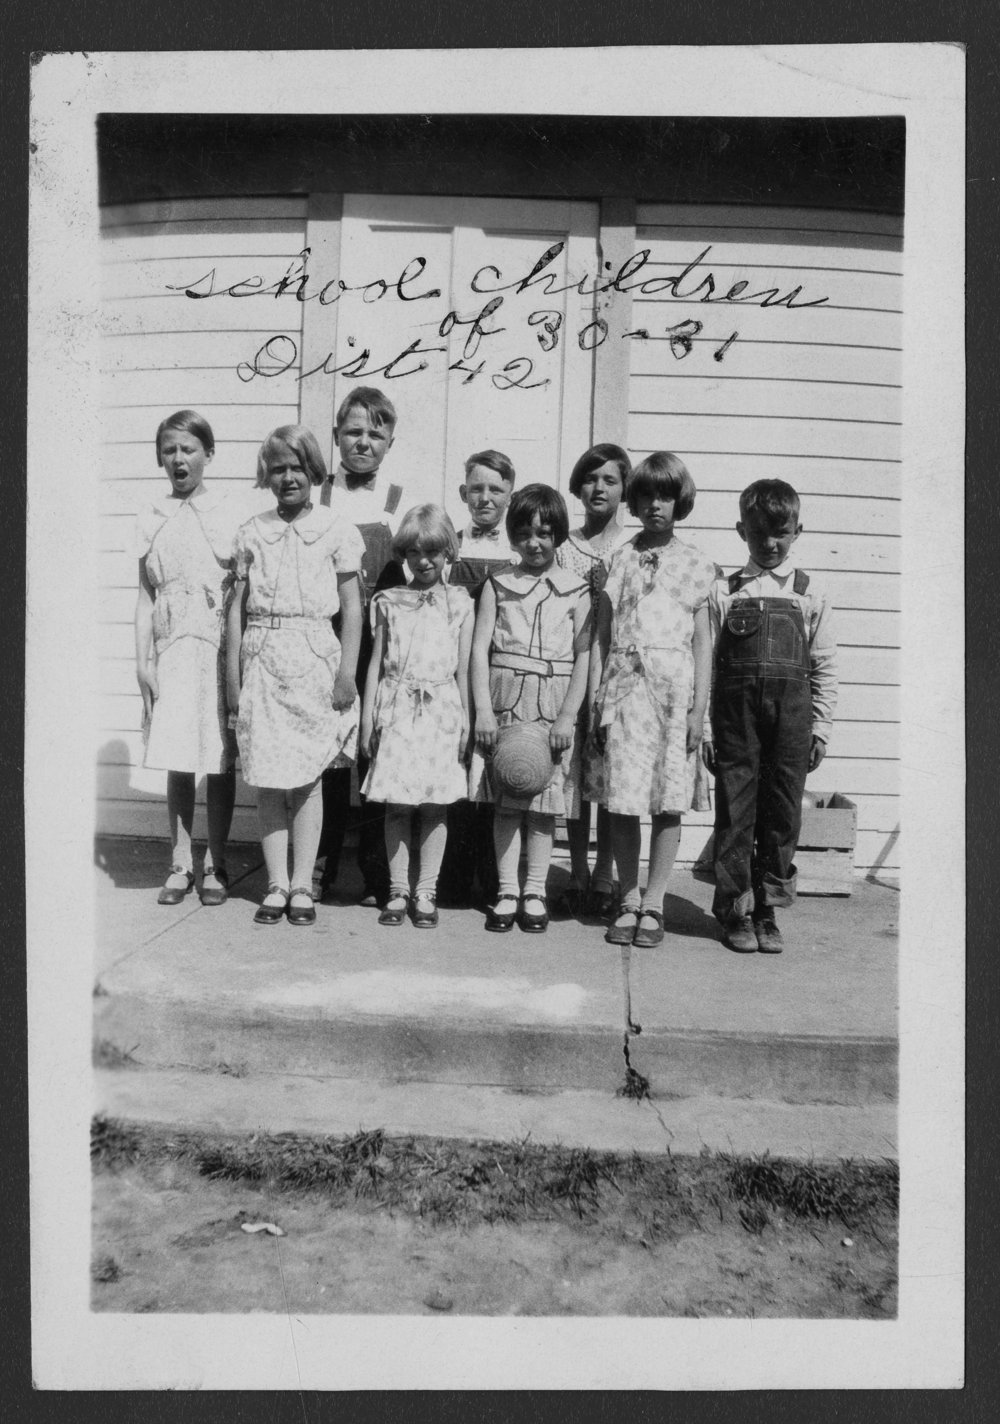 Students at Prairie View School, District 42, Cloud County, Kansas - 1